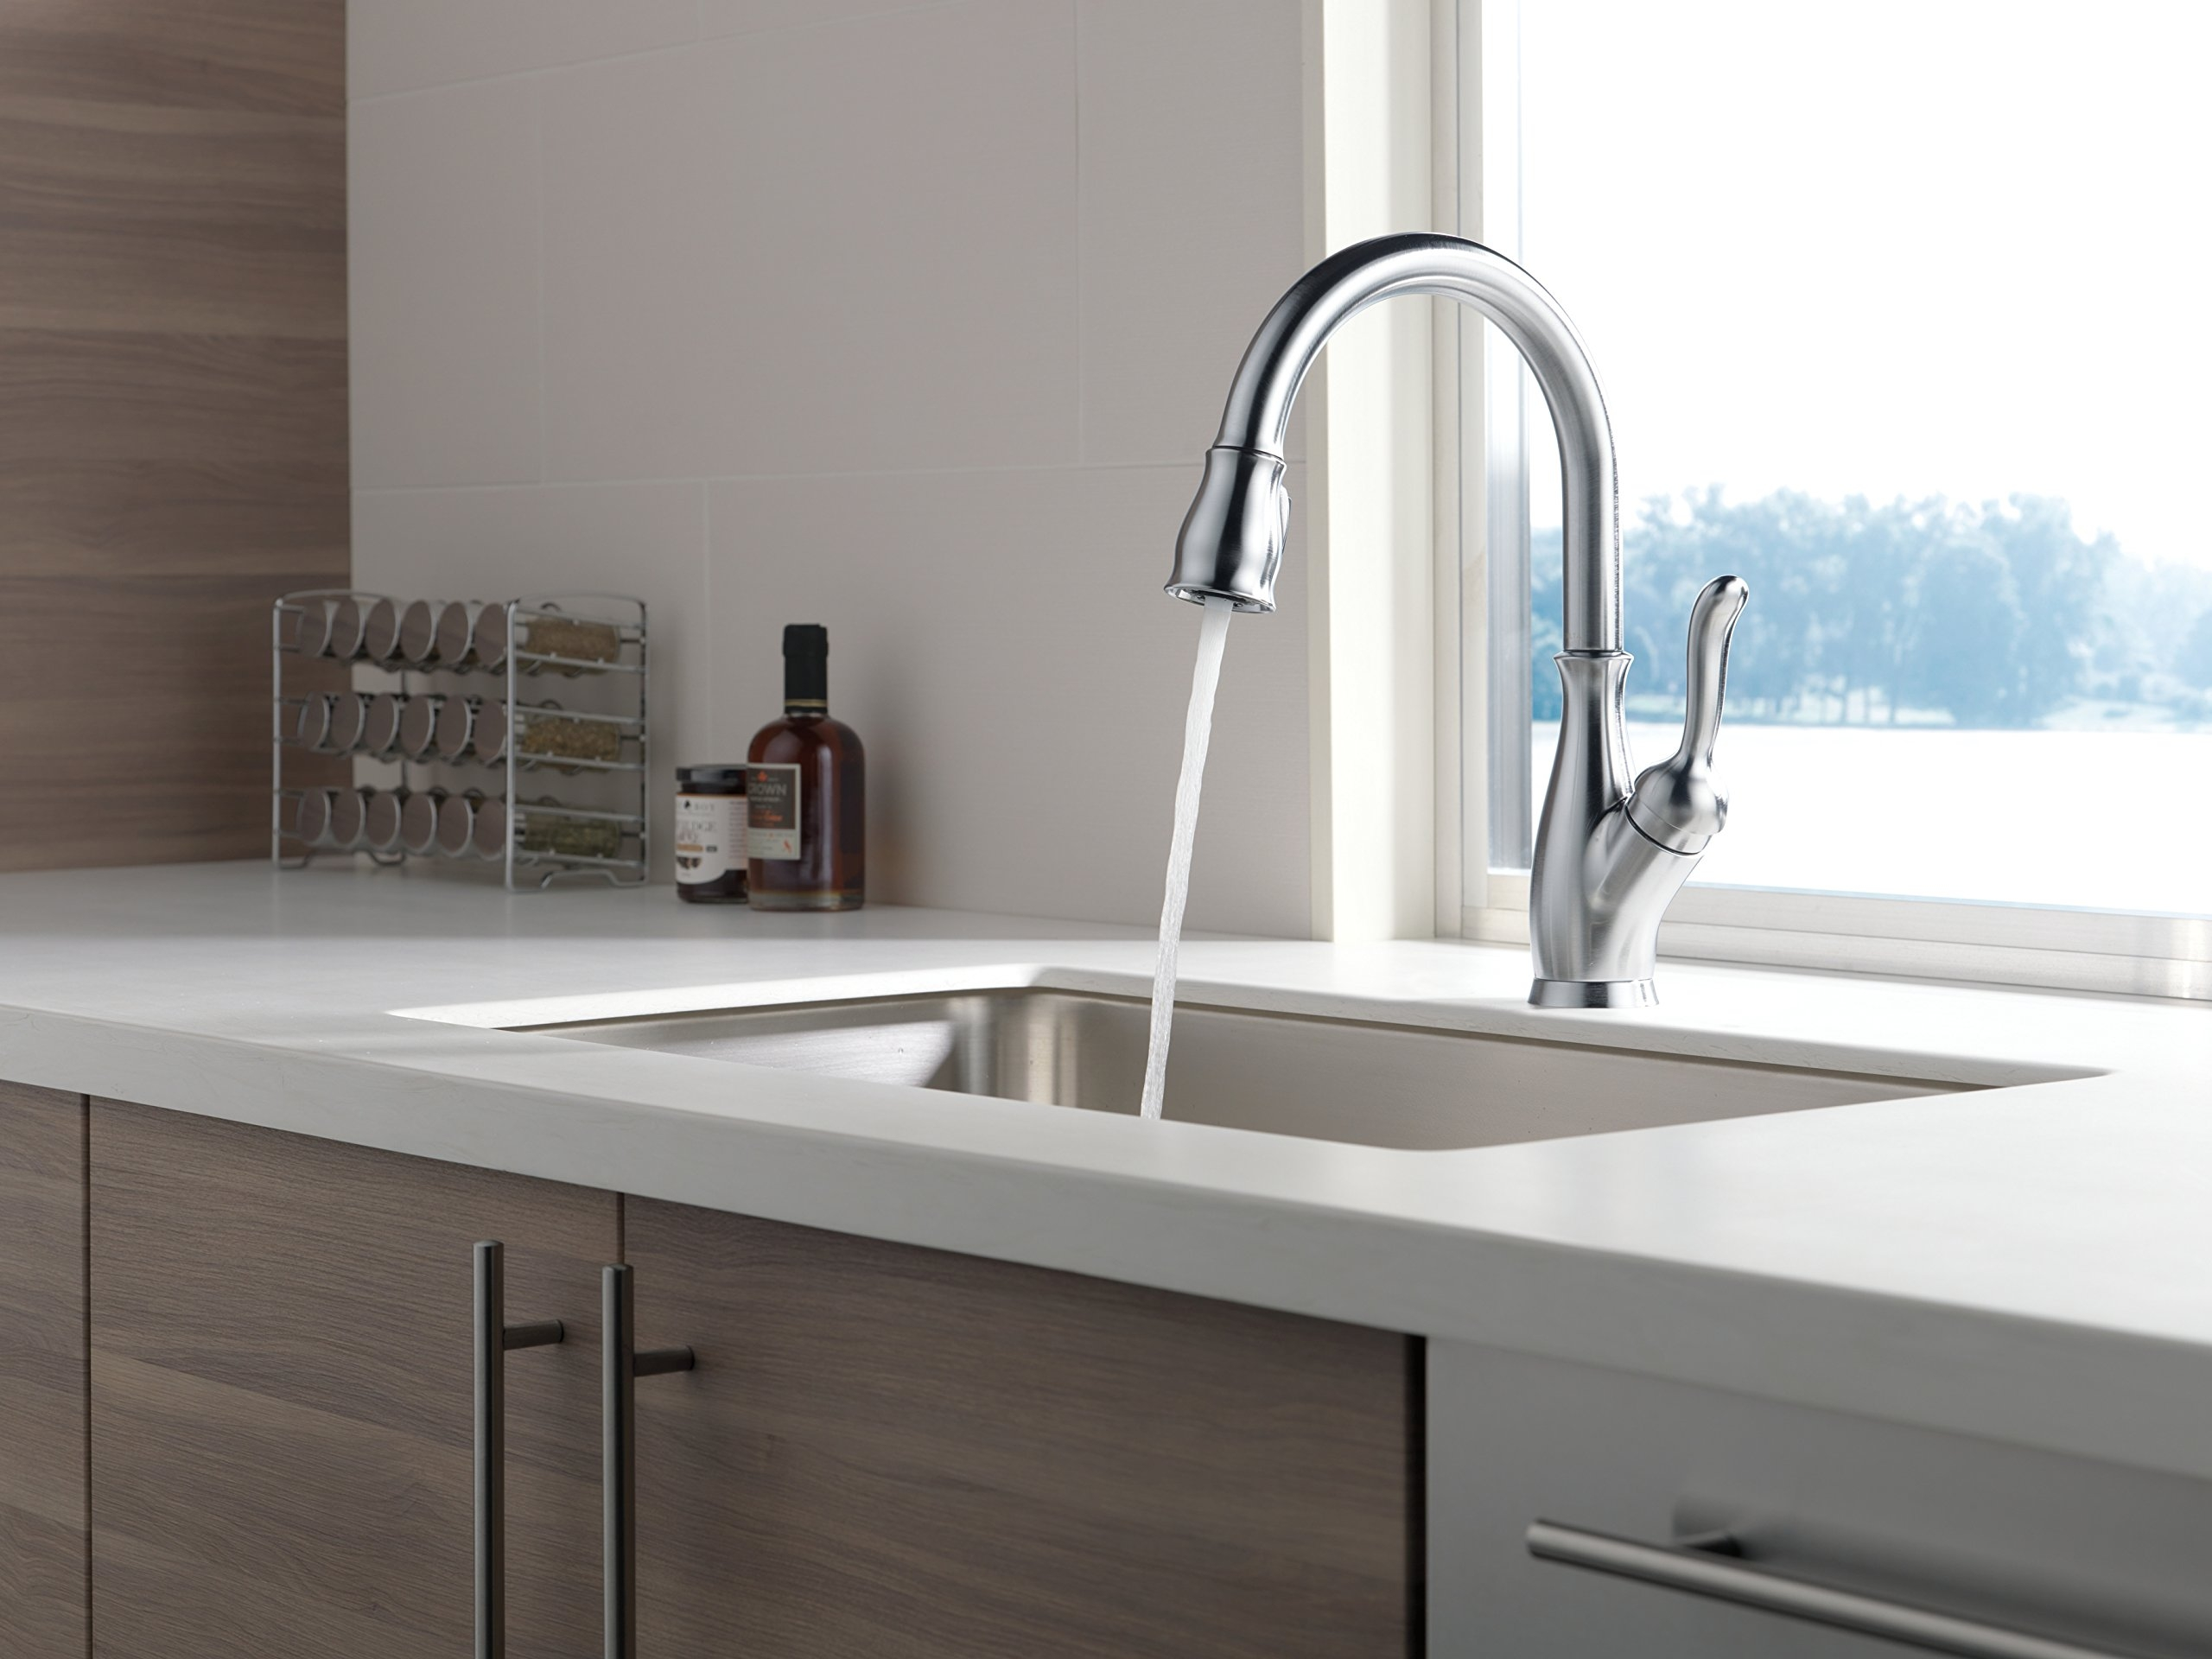 Ideas, best kitchen faucet for shallow sink best kitchen faucet for shallow sink which are the best kitchen faucets for your home ensonido home 2560 x 1920  .